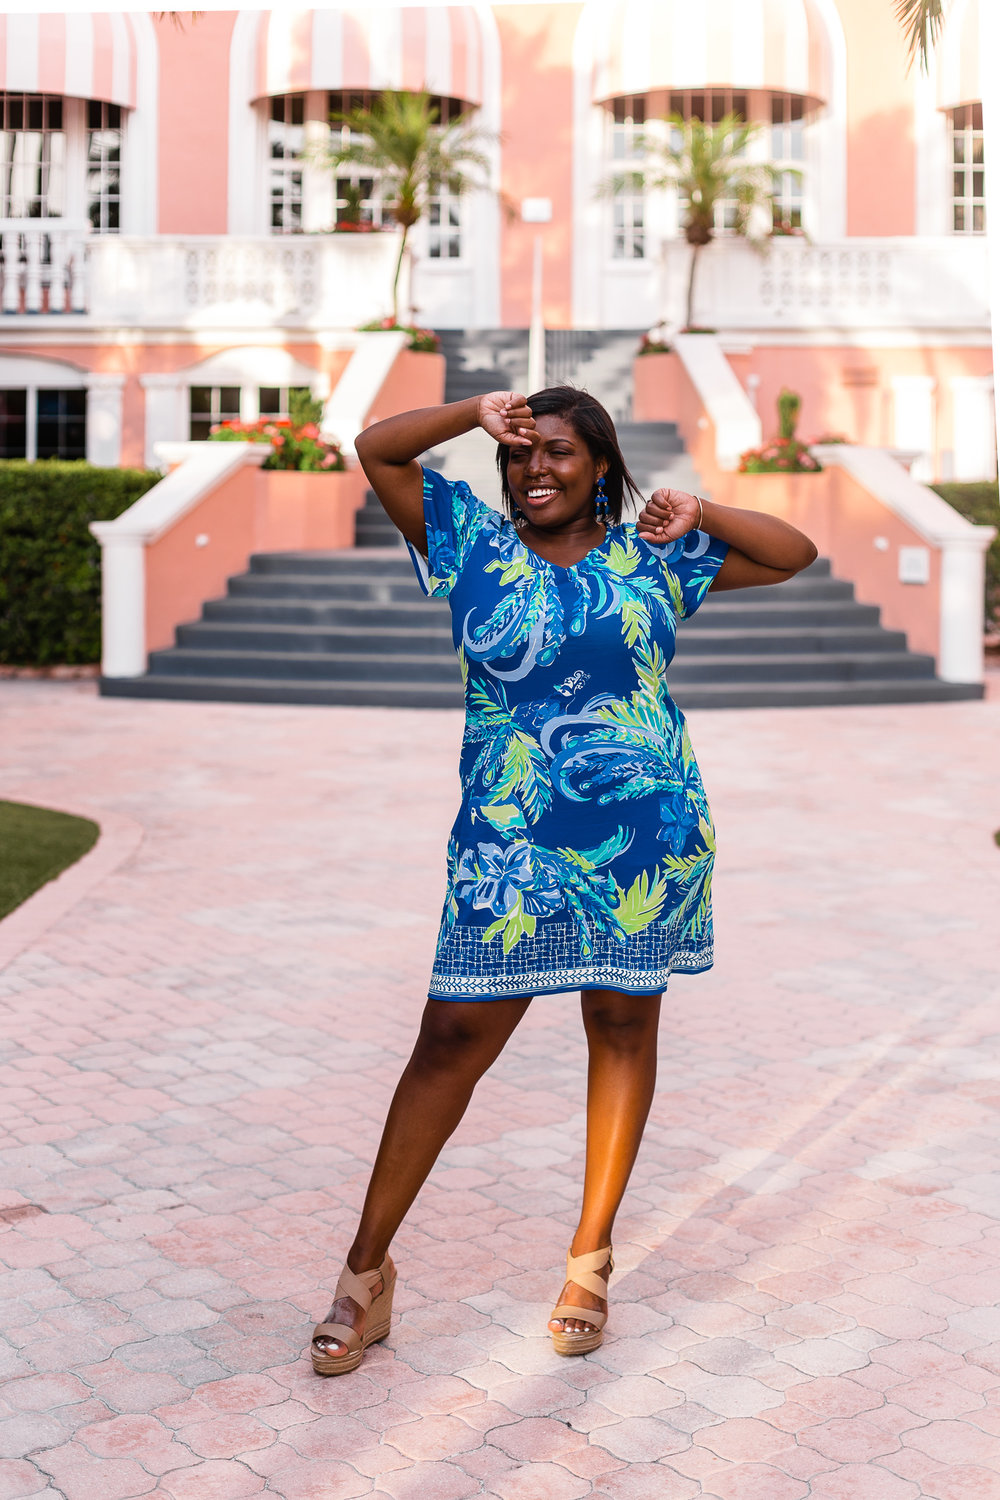 Tampa blogger Ayana Lage stands in front of the Don Cesar hotel in St. Petersburg, Florida. She is wearing a colorful Lilly Pulitzer blue and green dress.